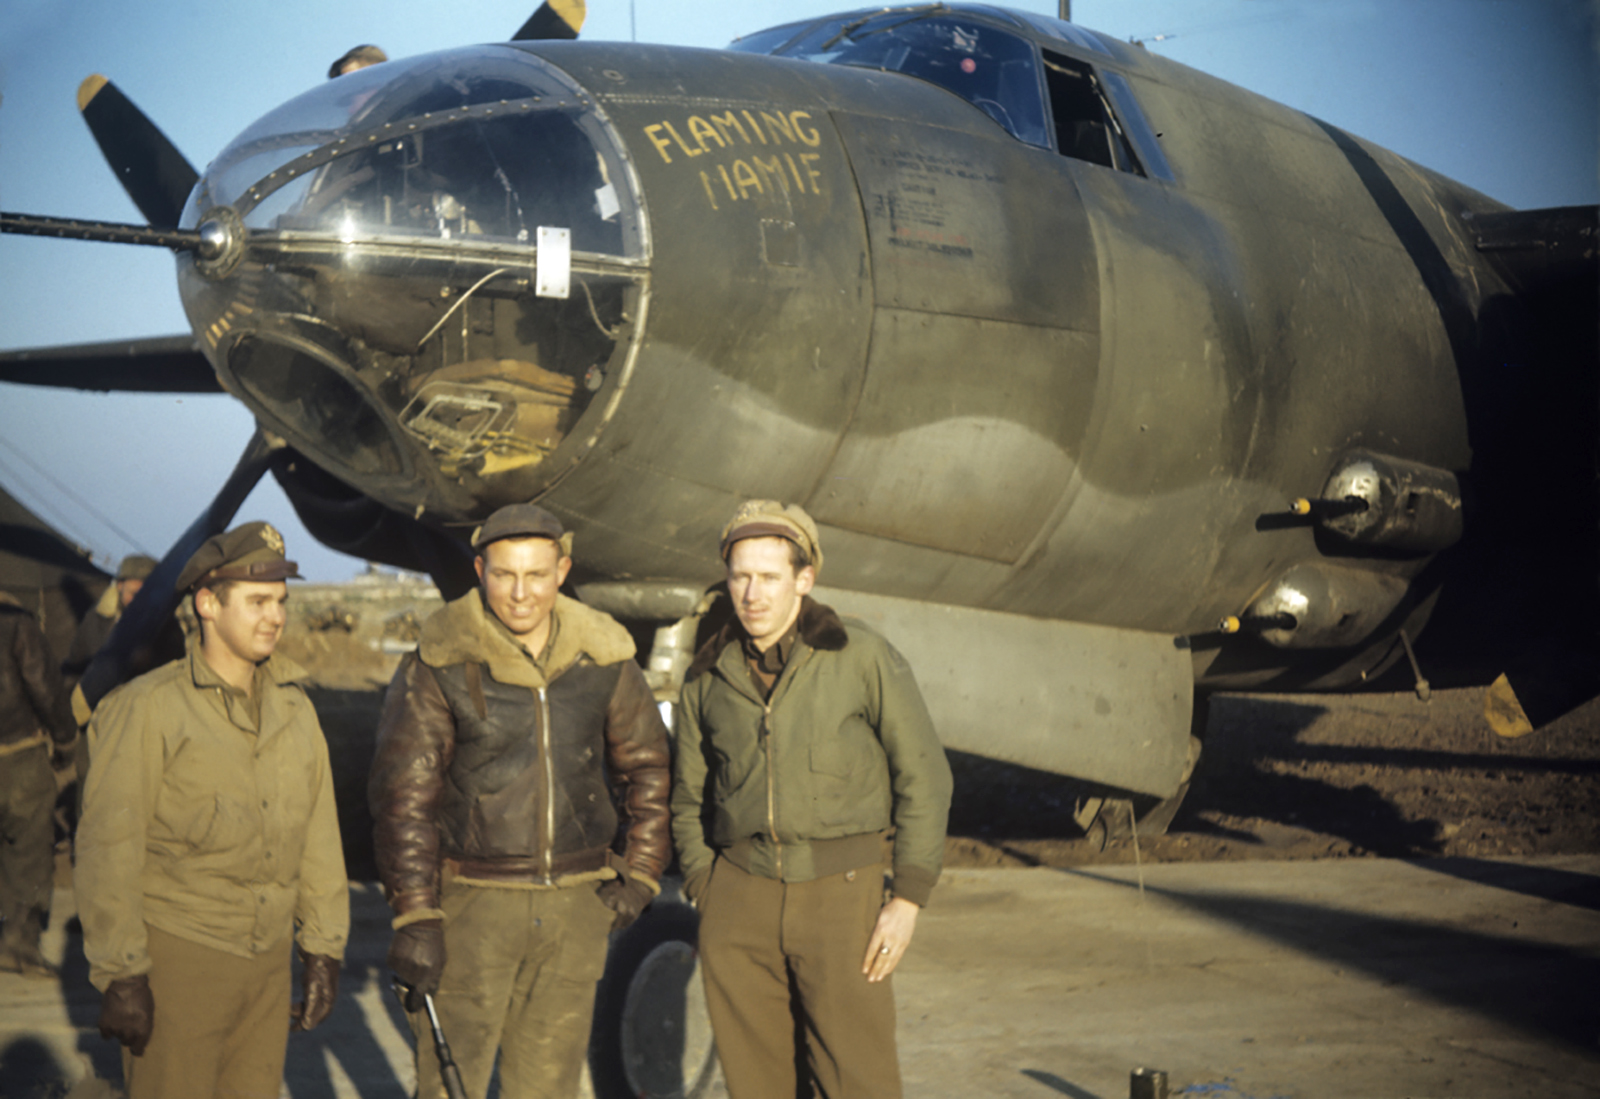 USAAF 41 34997 B 26C Marauder 323BG454BS RJP Flaming Mamie with 2Lt William Phelan and Lt George Spradling 01